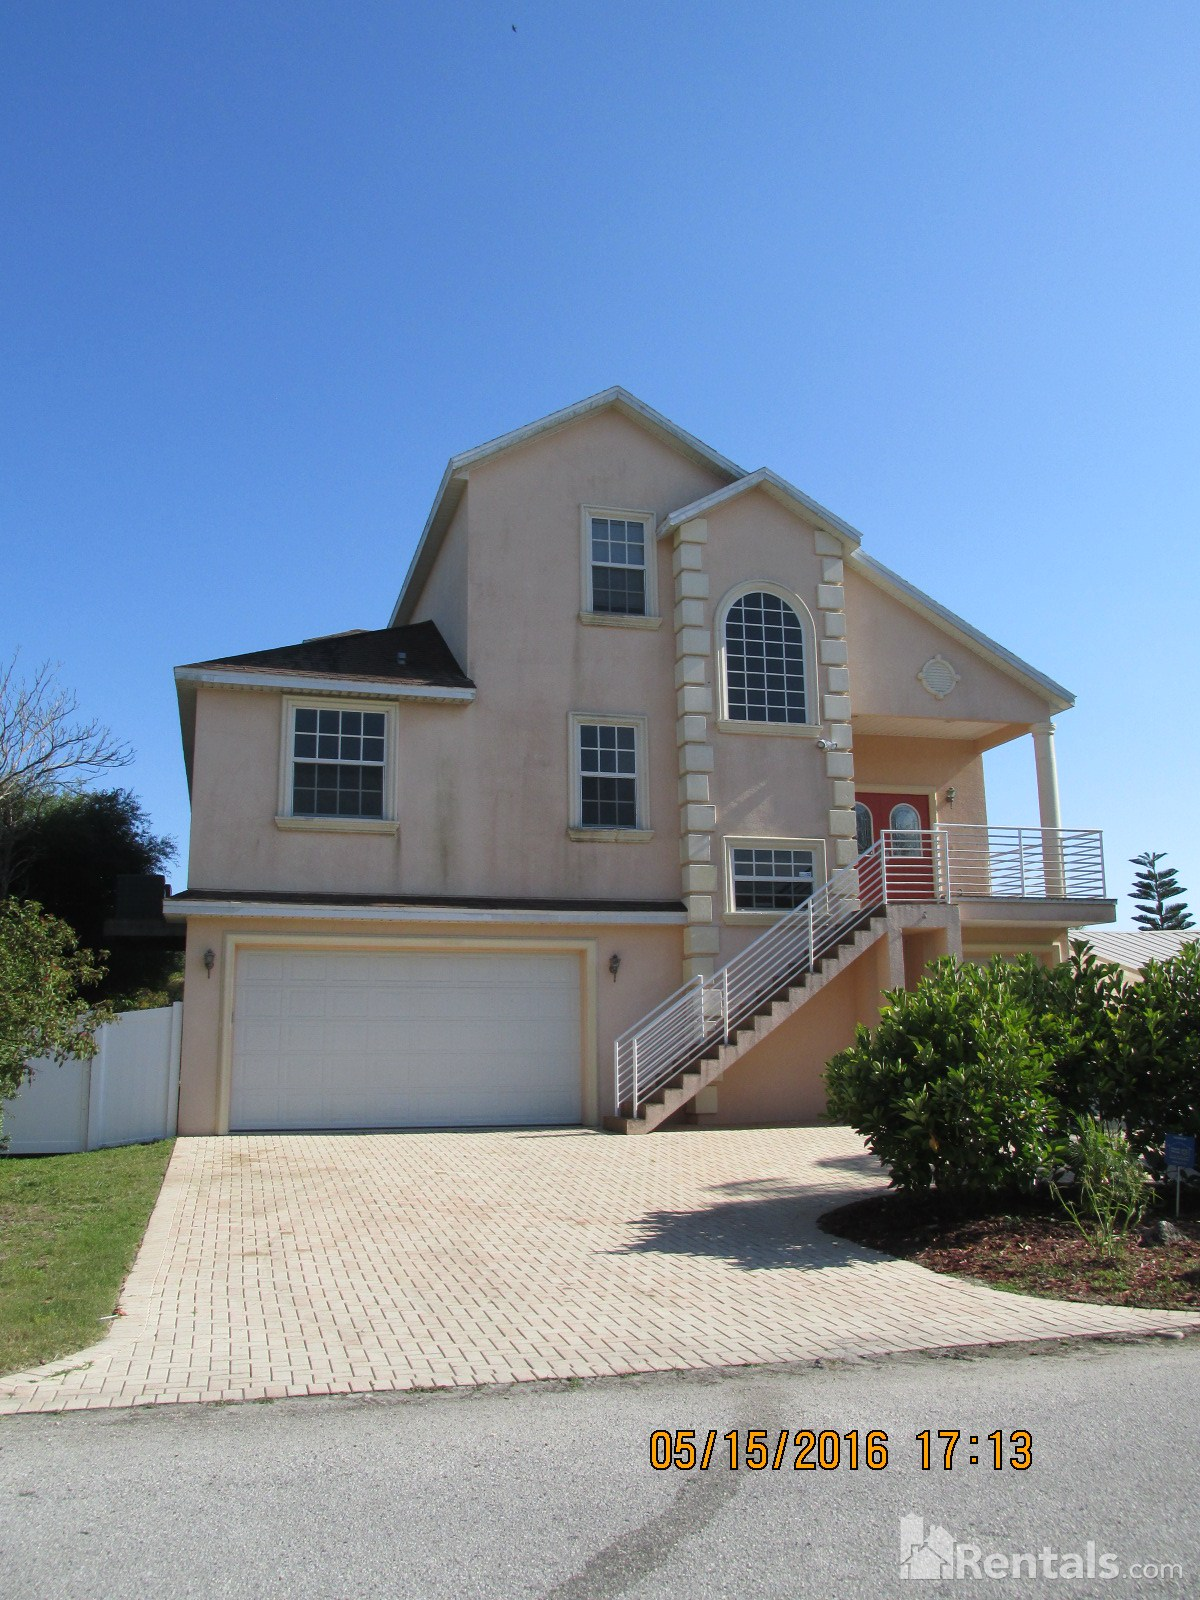 House for Rent in Sea Pines